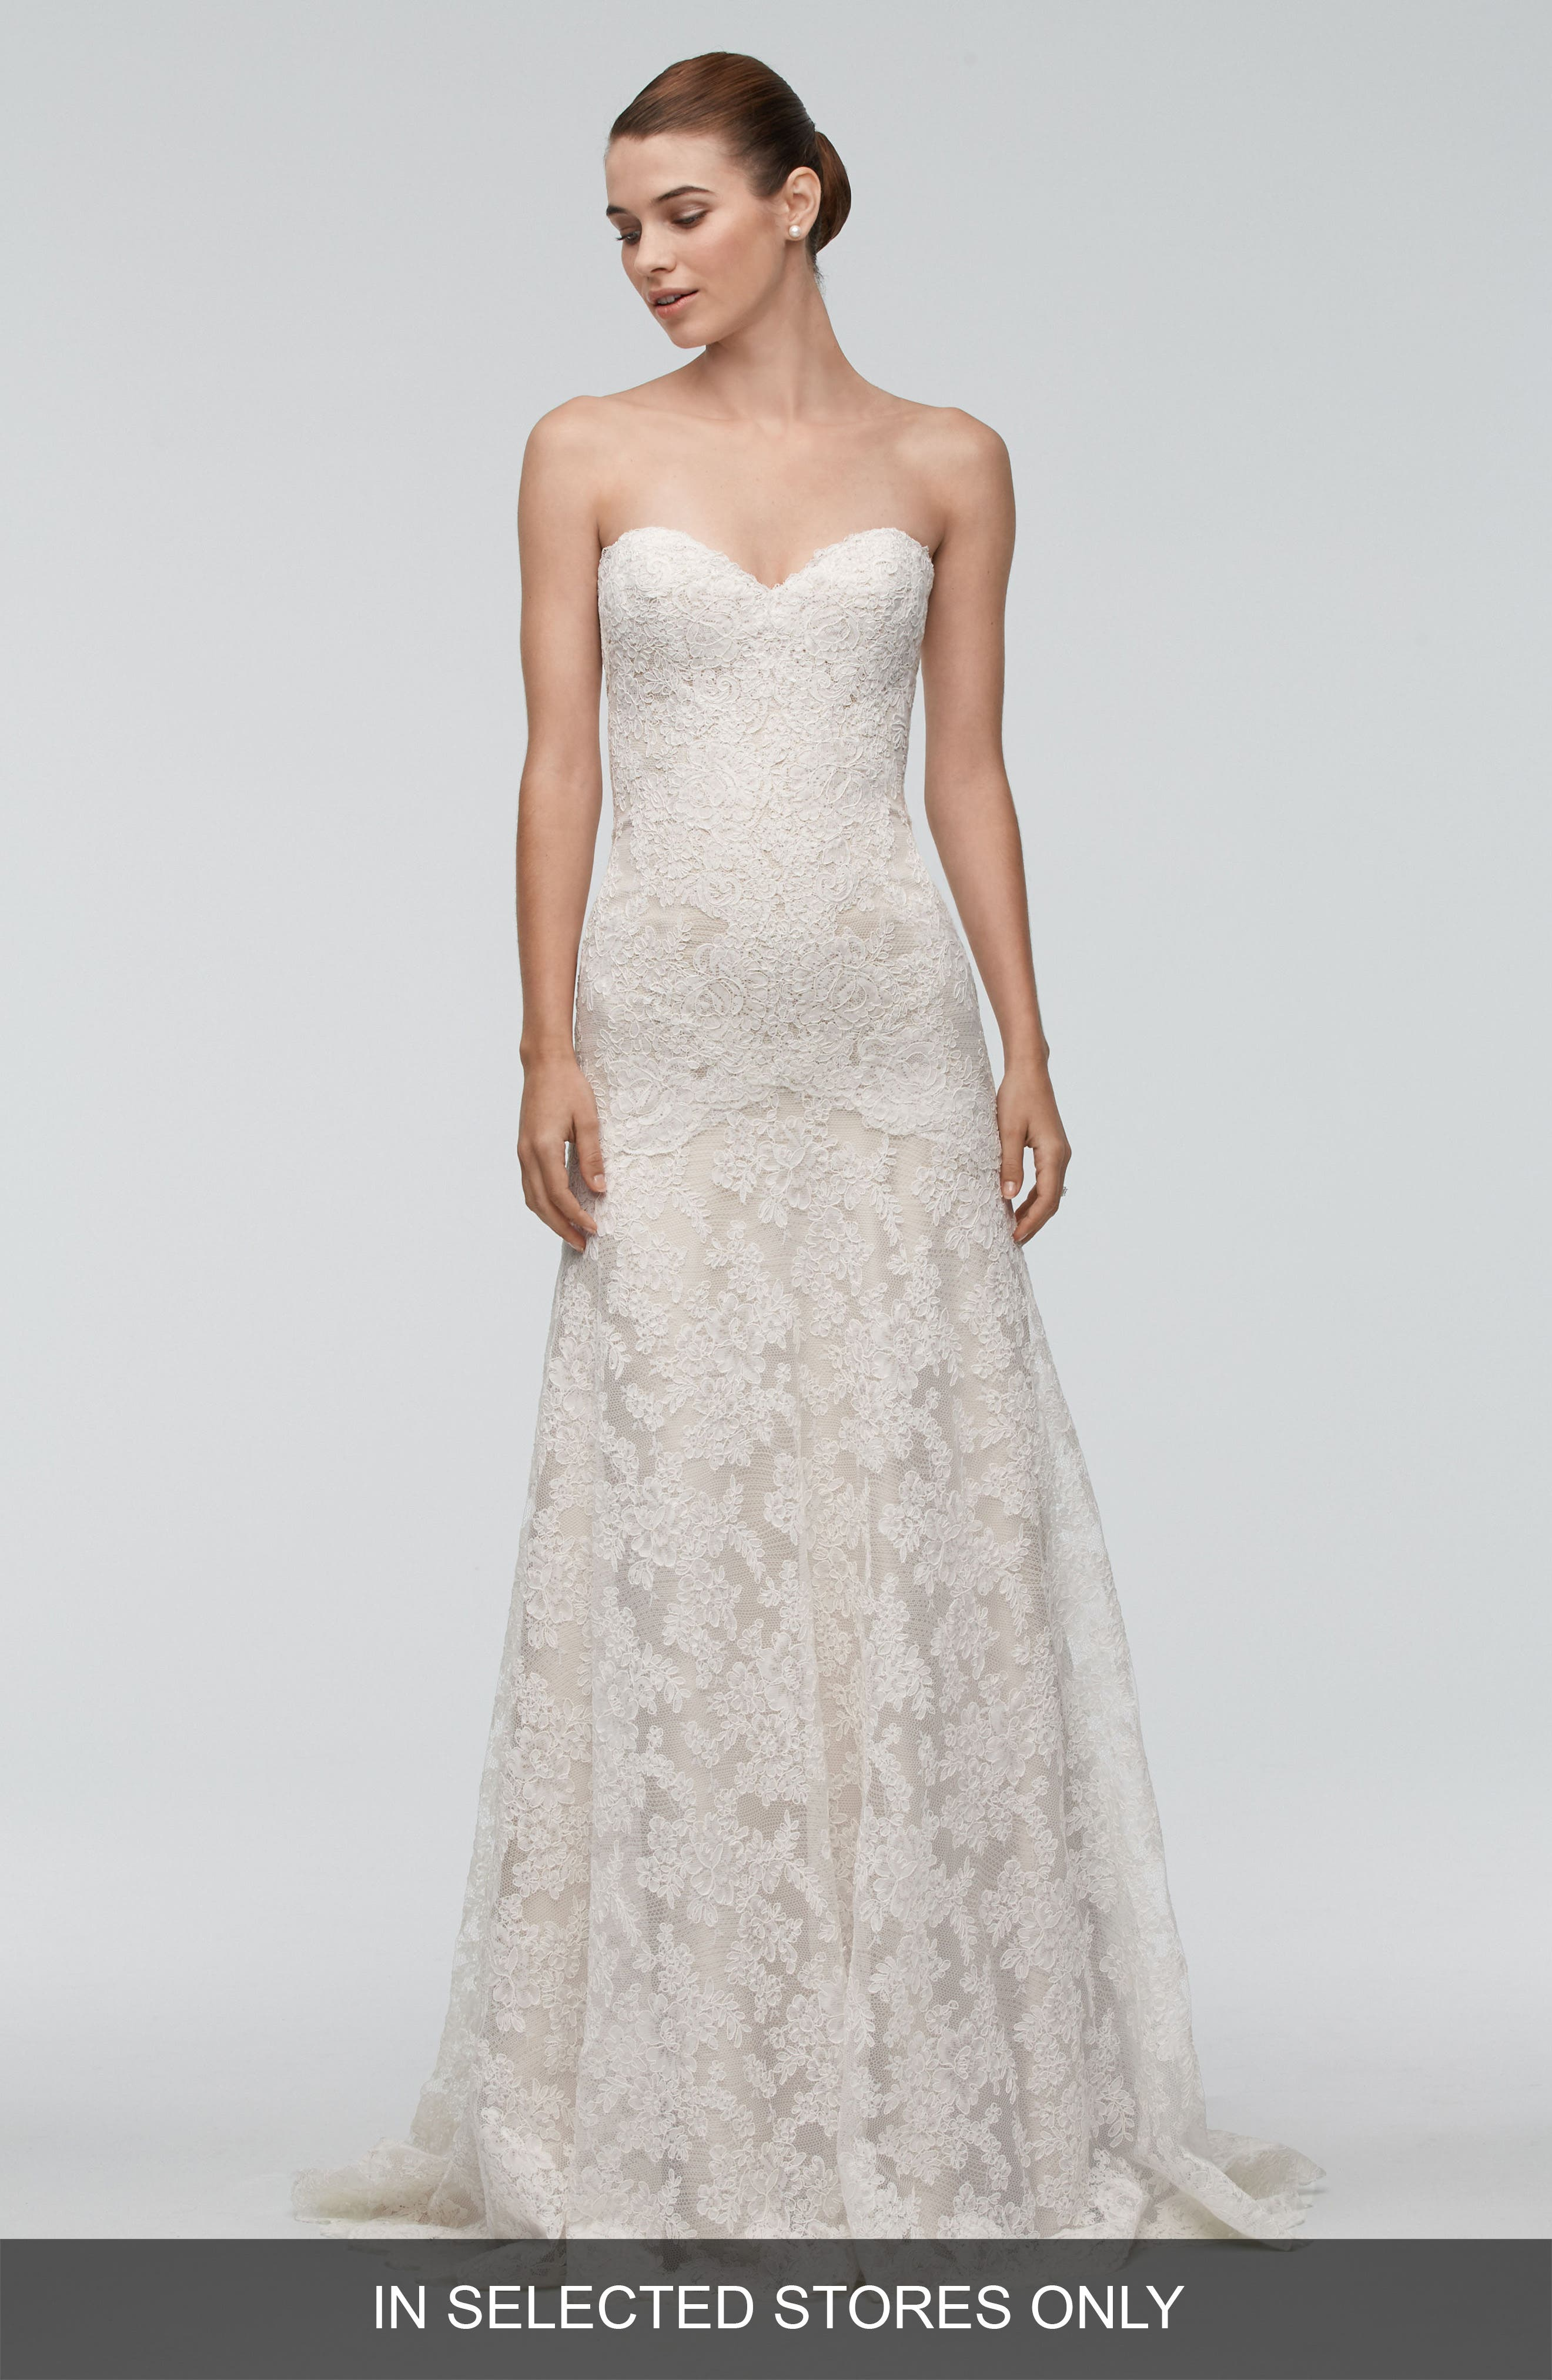 Oma Lace Trumpet Gown,                         Main,                         color, Ivory/ Champagne